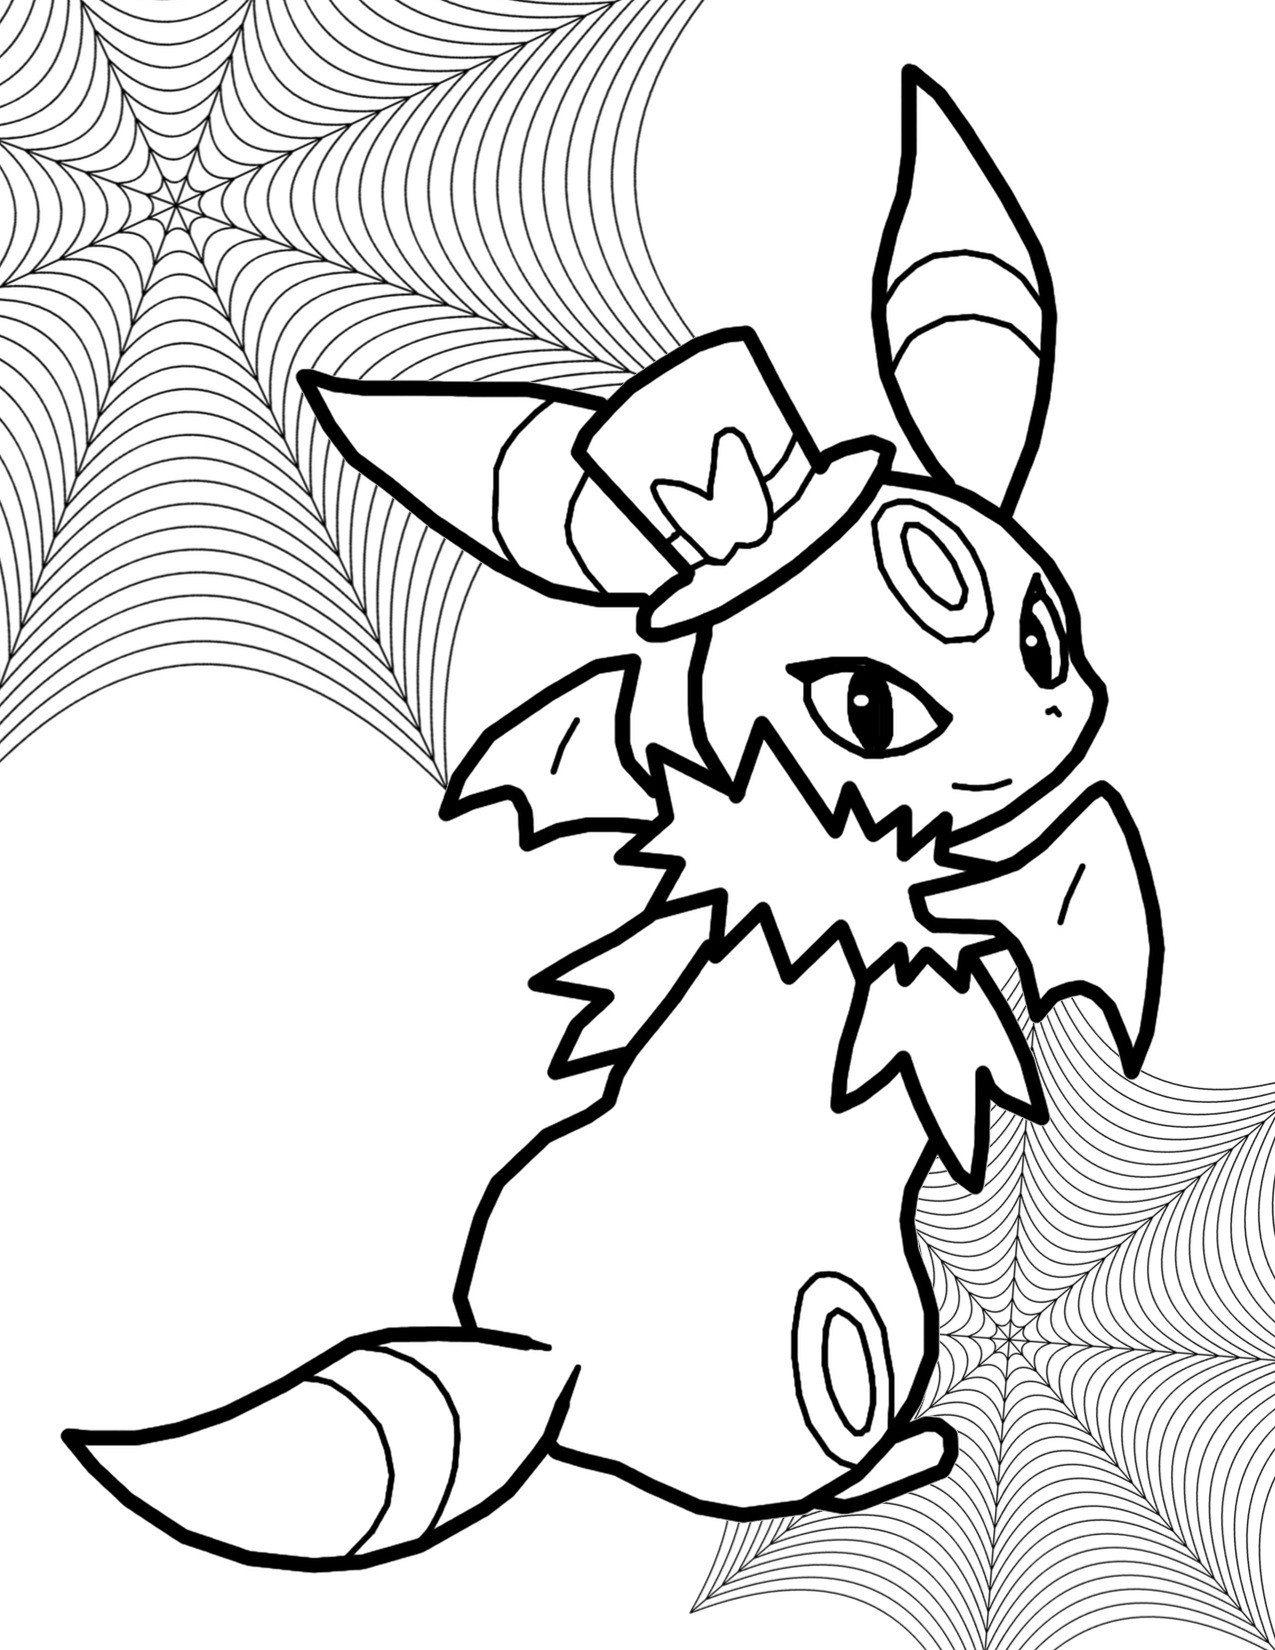 coloring halloween drawings colormon here is the last of the halloween coloring drawings halloween coloring